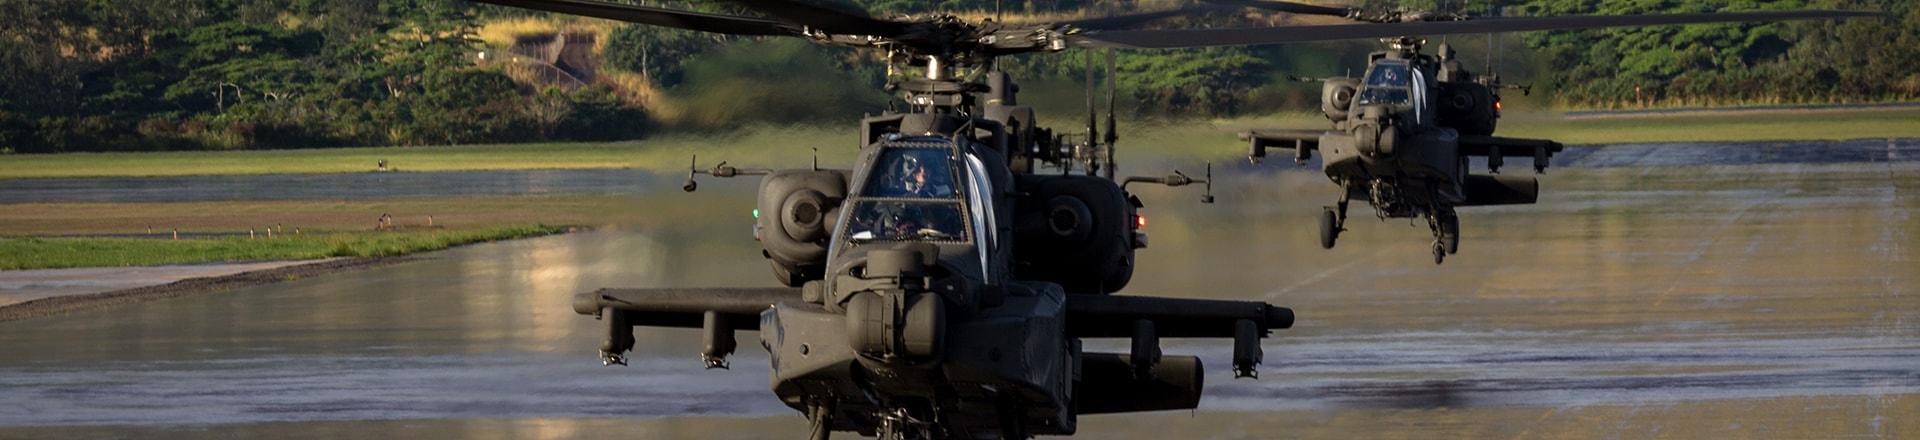 wp-band-image-apache-helicopter-red-1920×440-0917-min